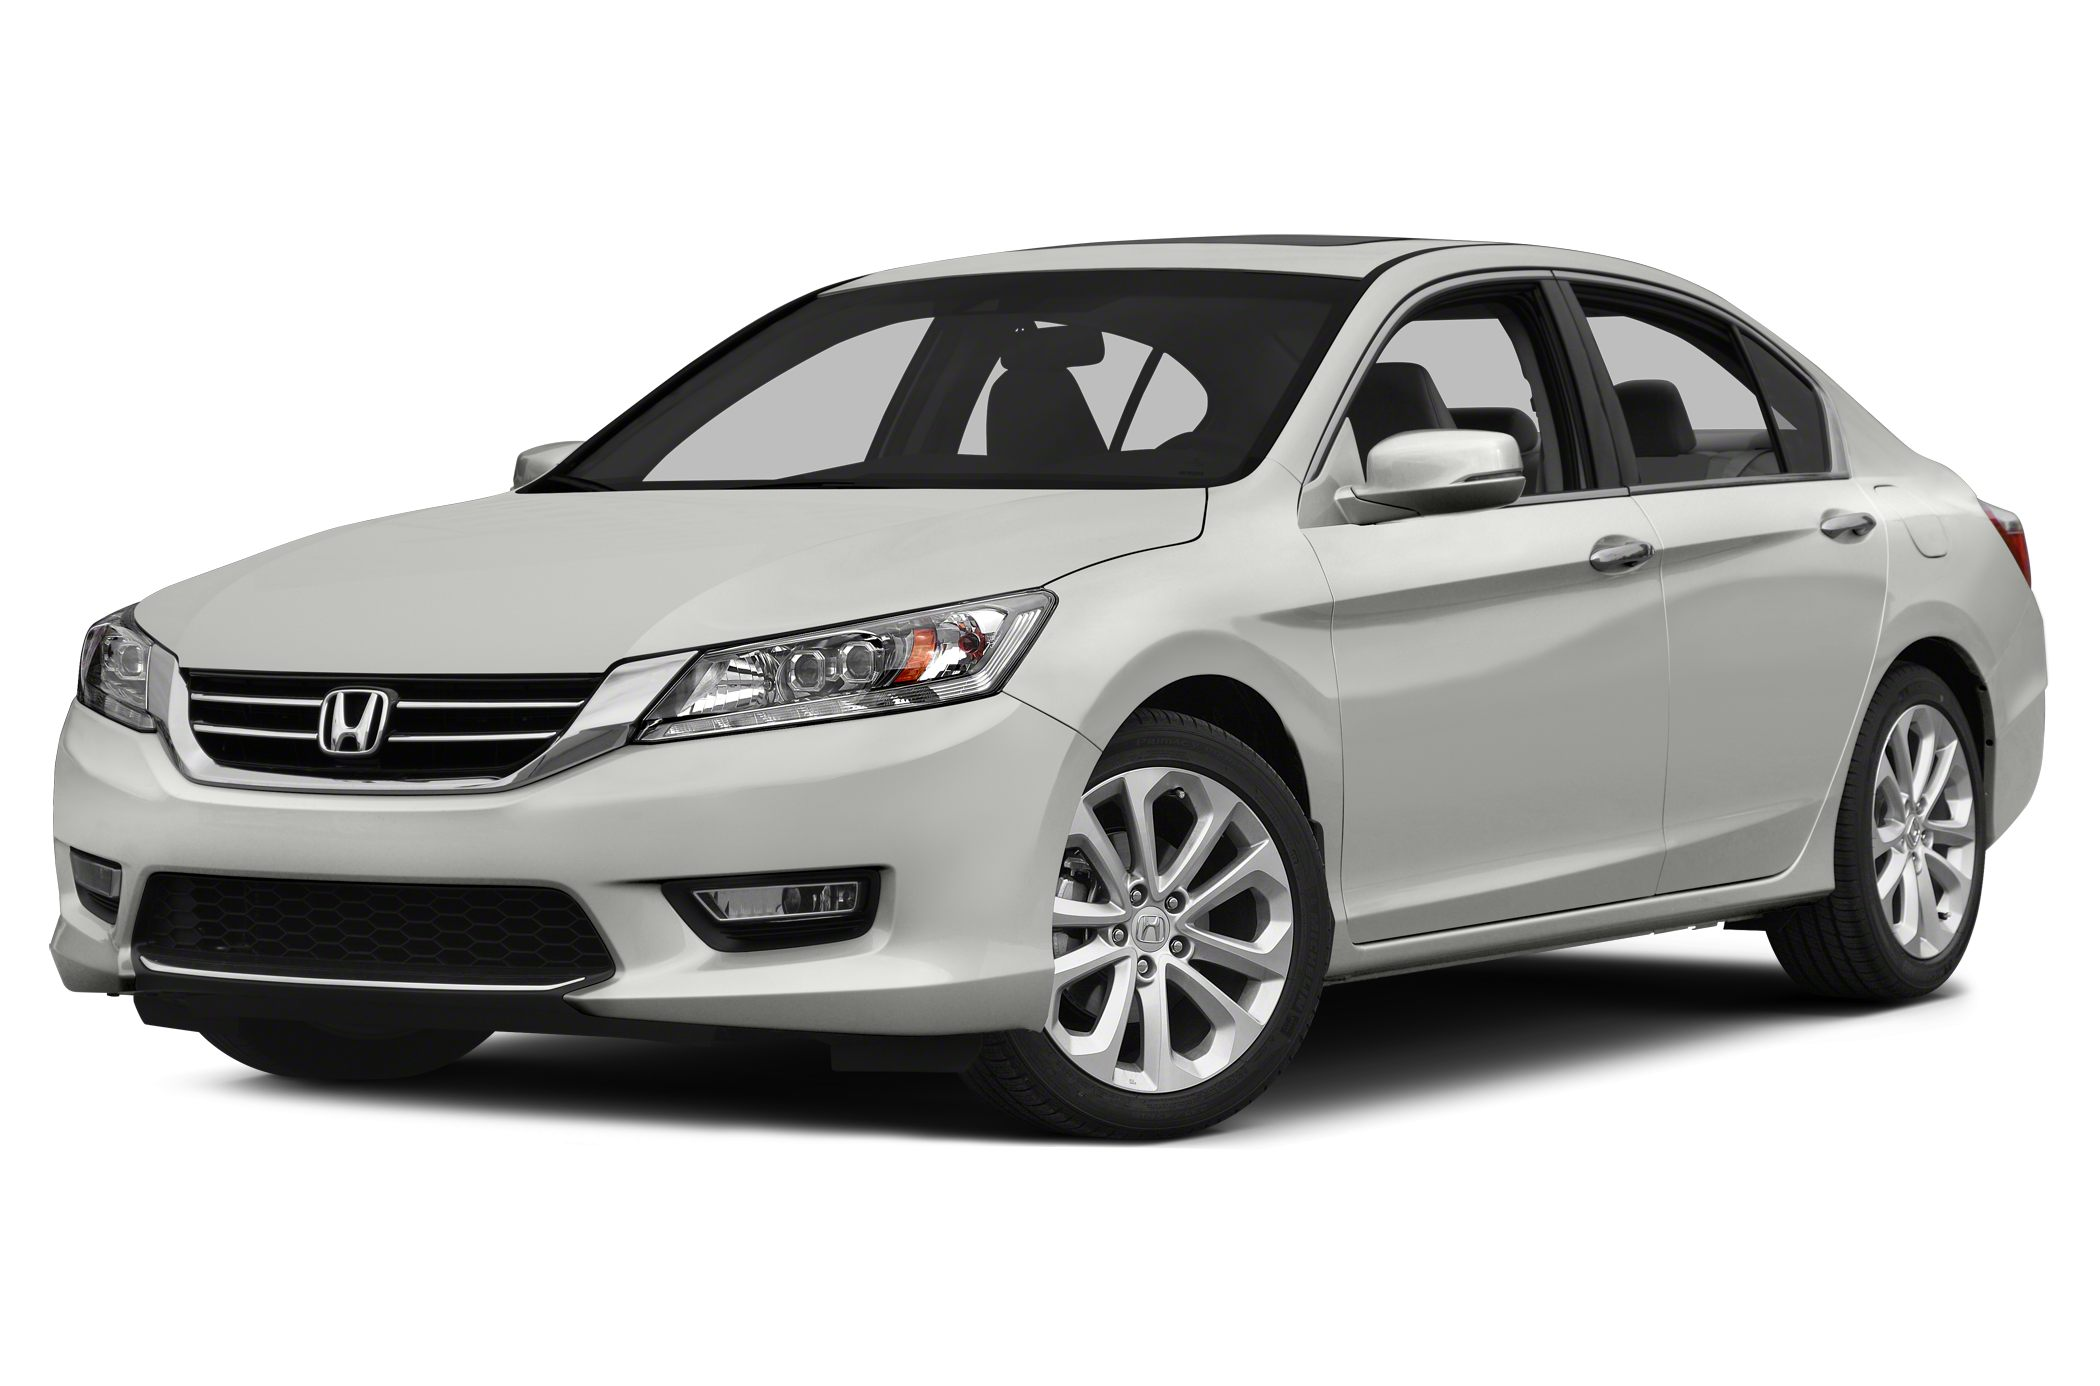 Honda Accord Touring Dr Sedan Pricing And Options - 2017 honda accord hybrid invoice price